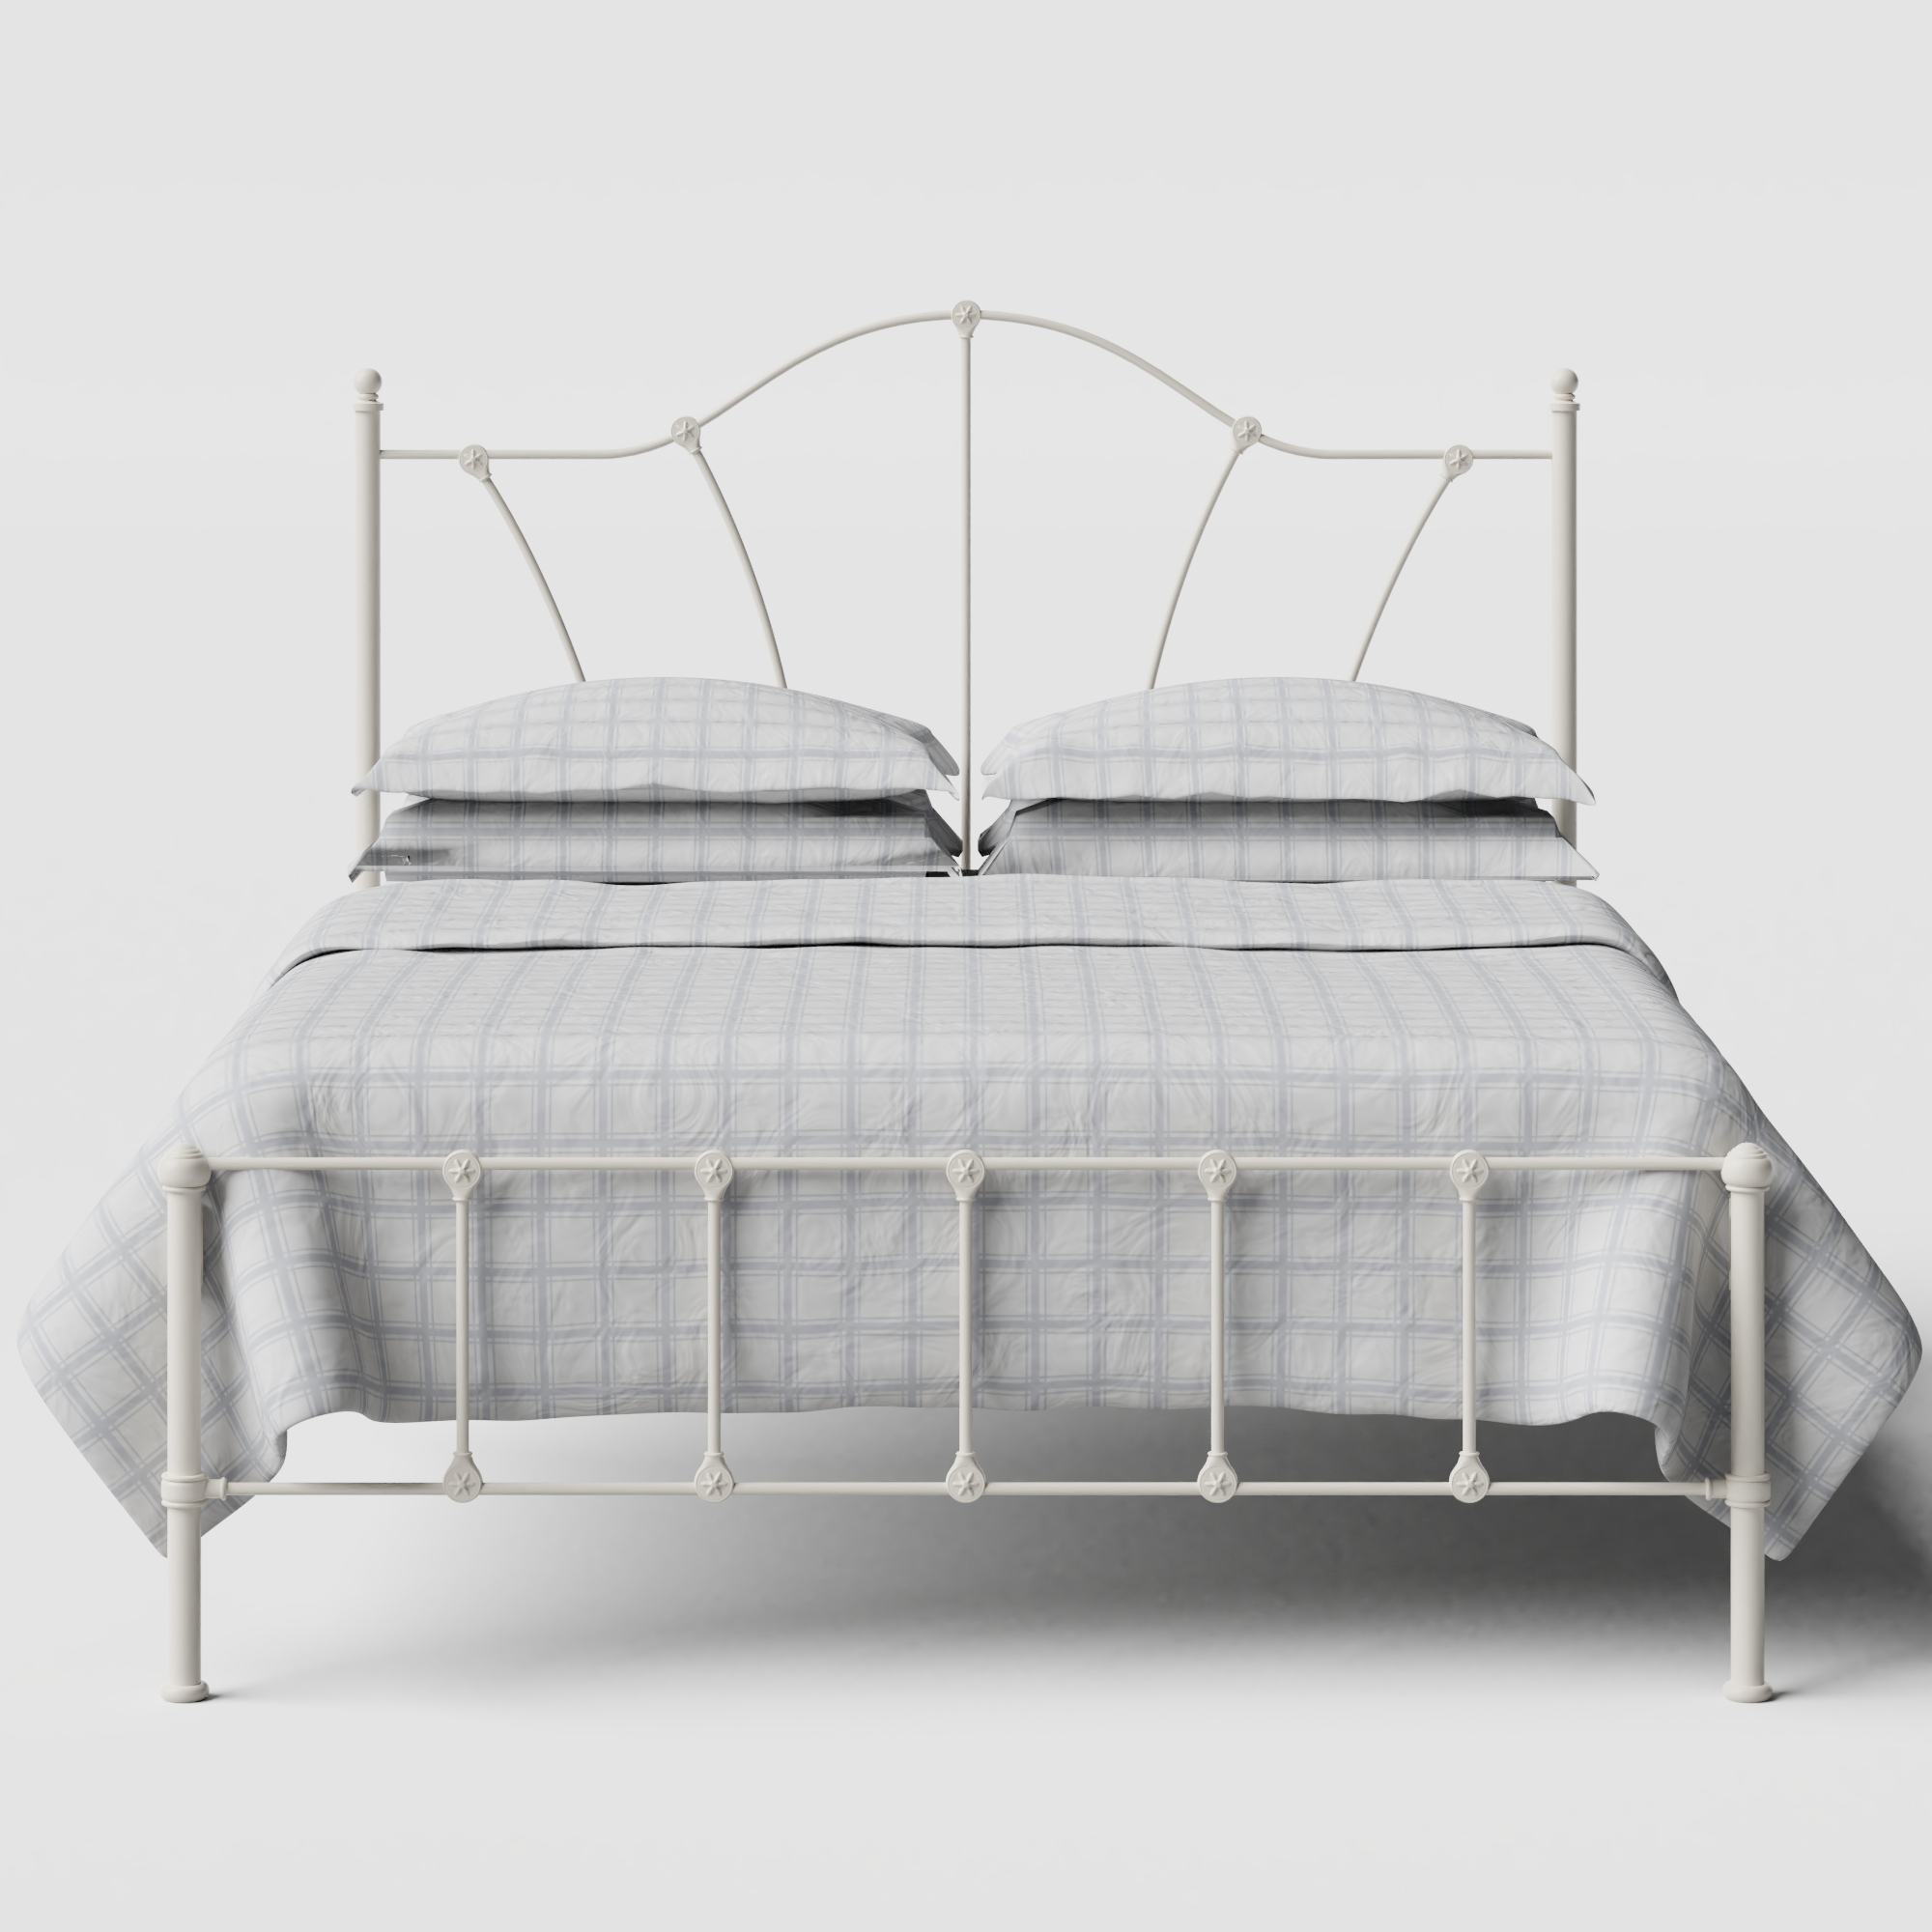 Claudia iron/metal bed in ivory